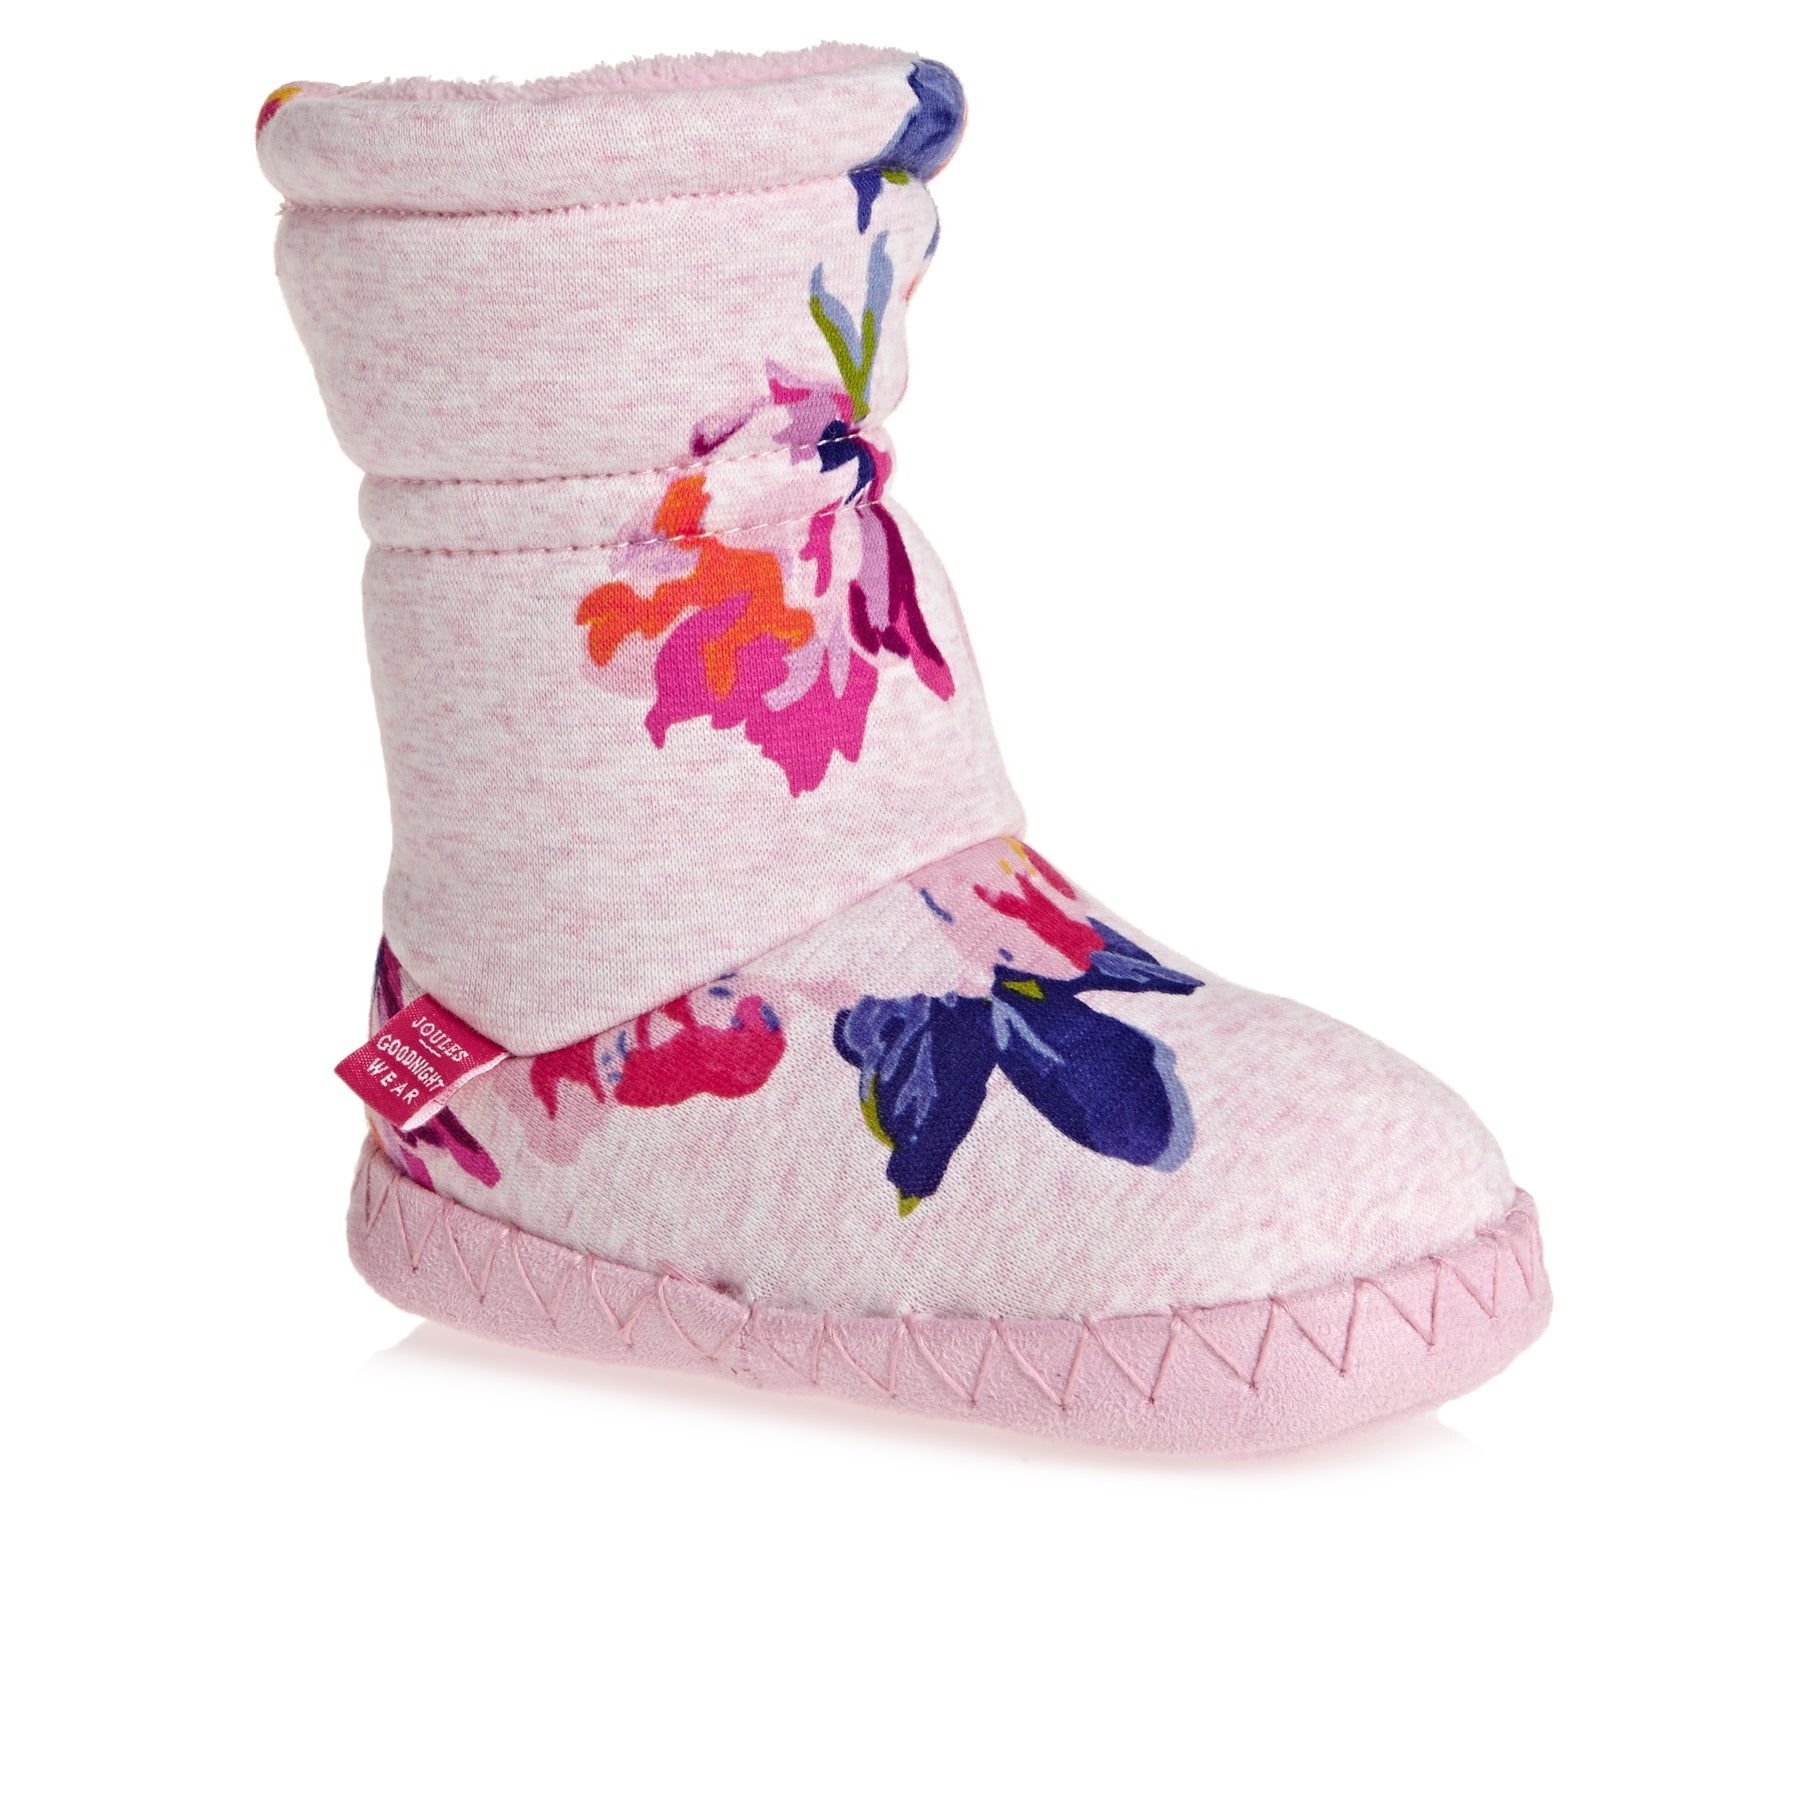 Joules Padabout Girls Slippers - Pink Marl Granny Floral